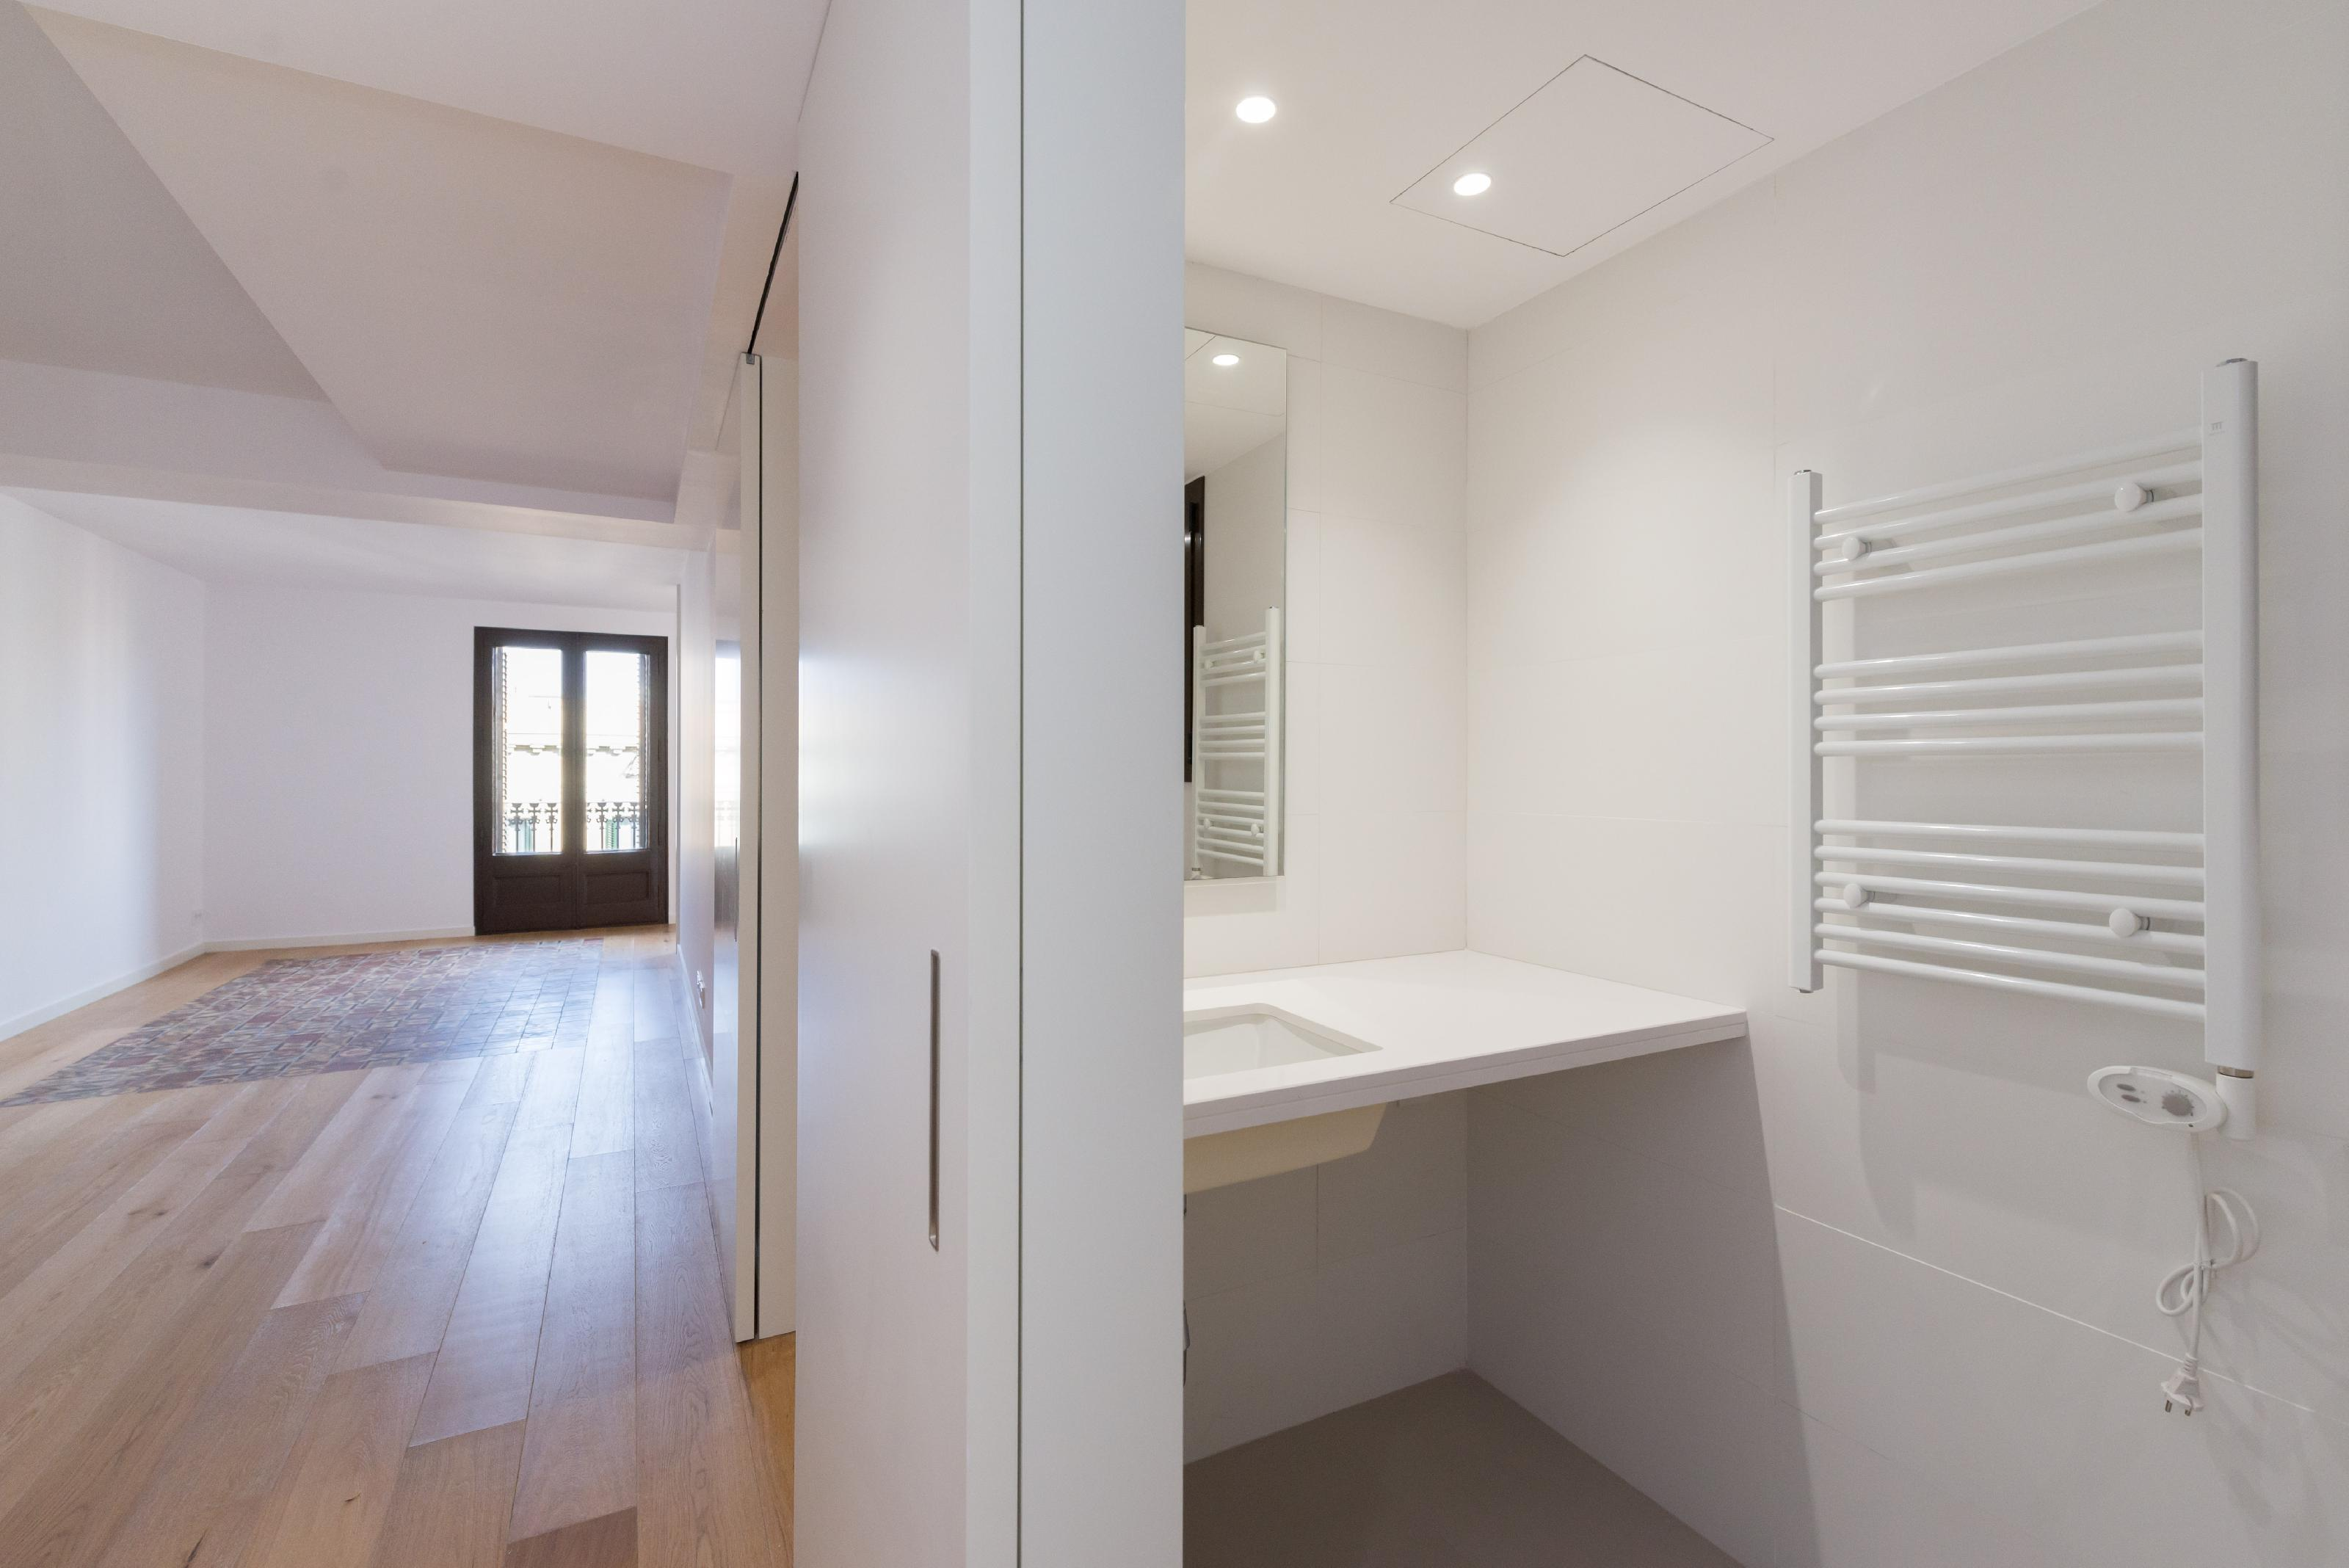 236358 Flat for sale in Eixample, Old Left Eixample 15